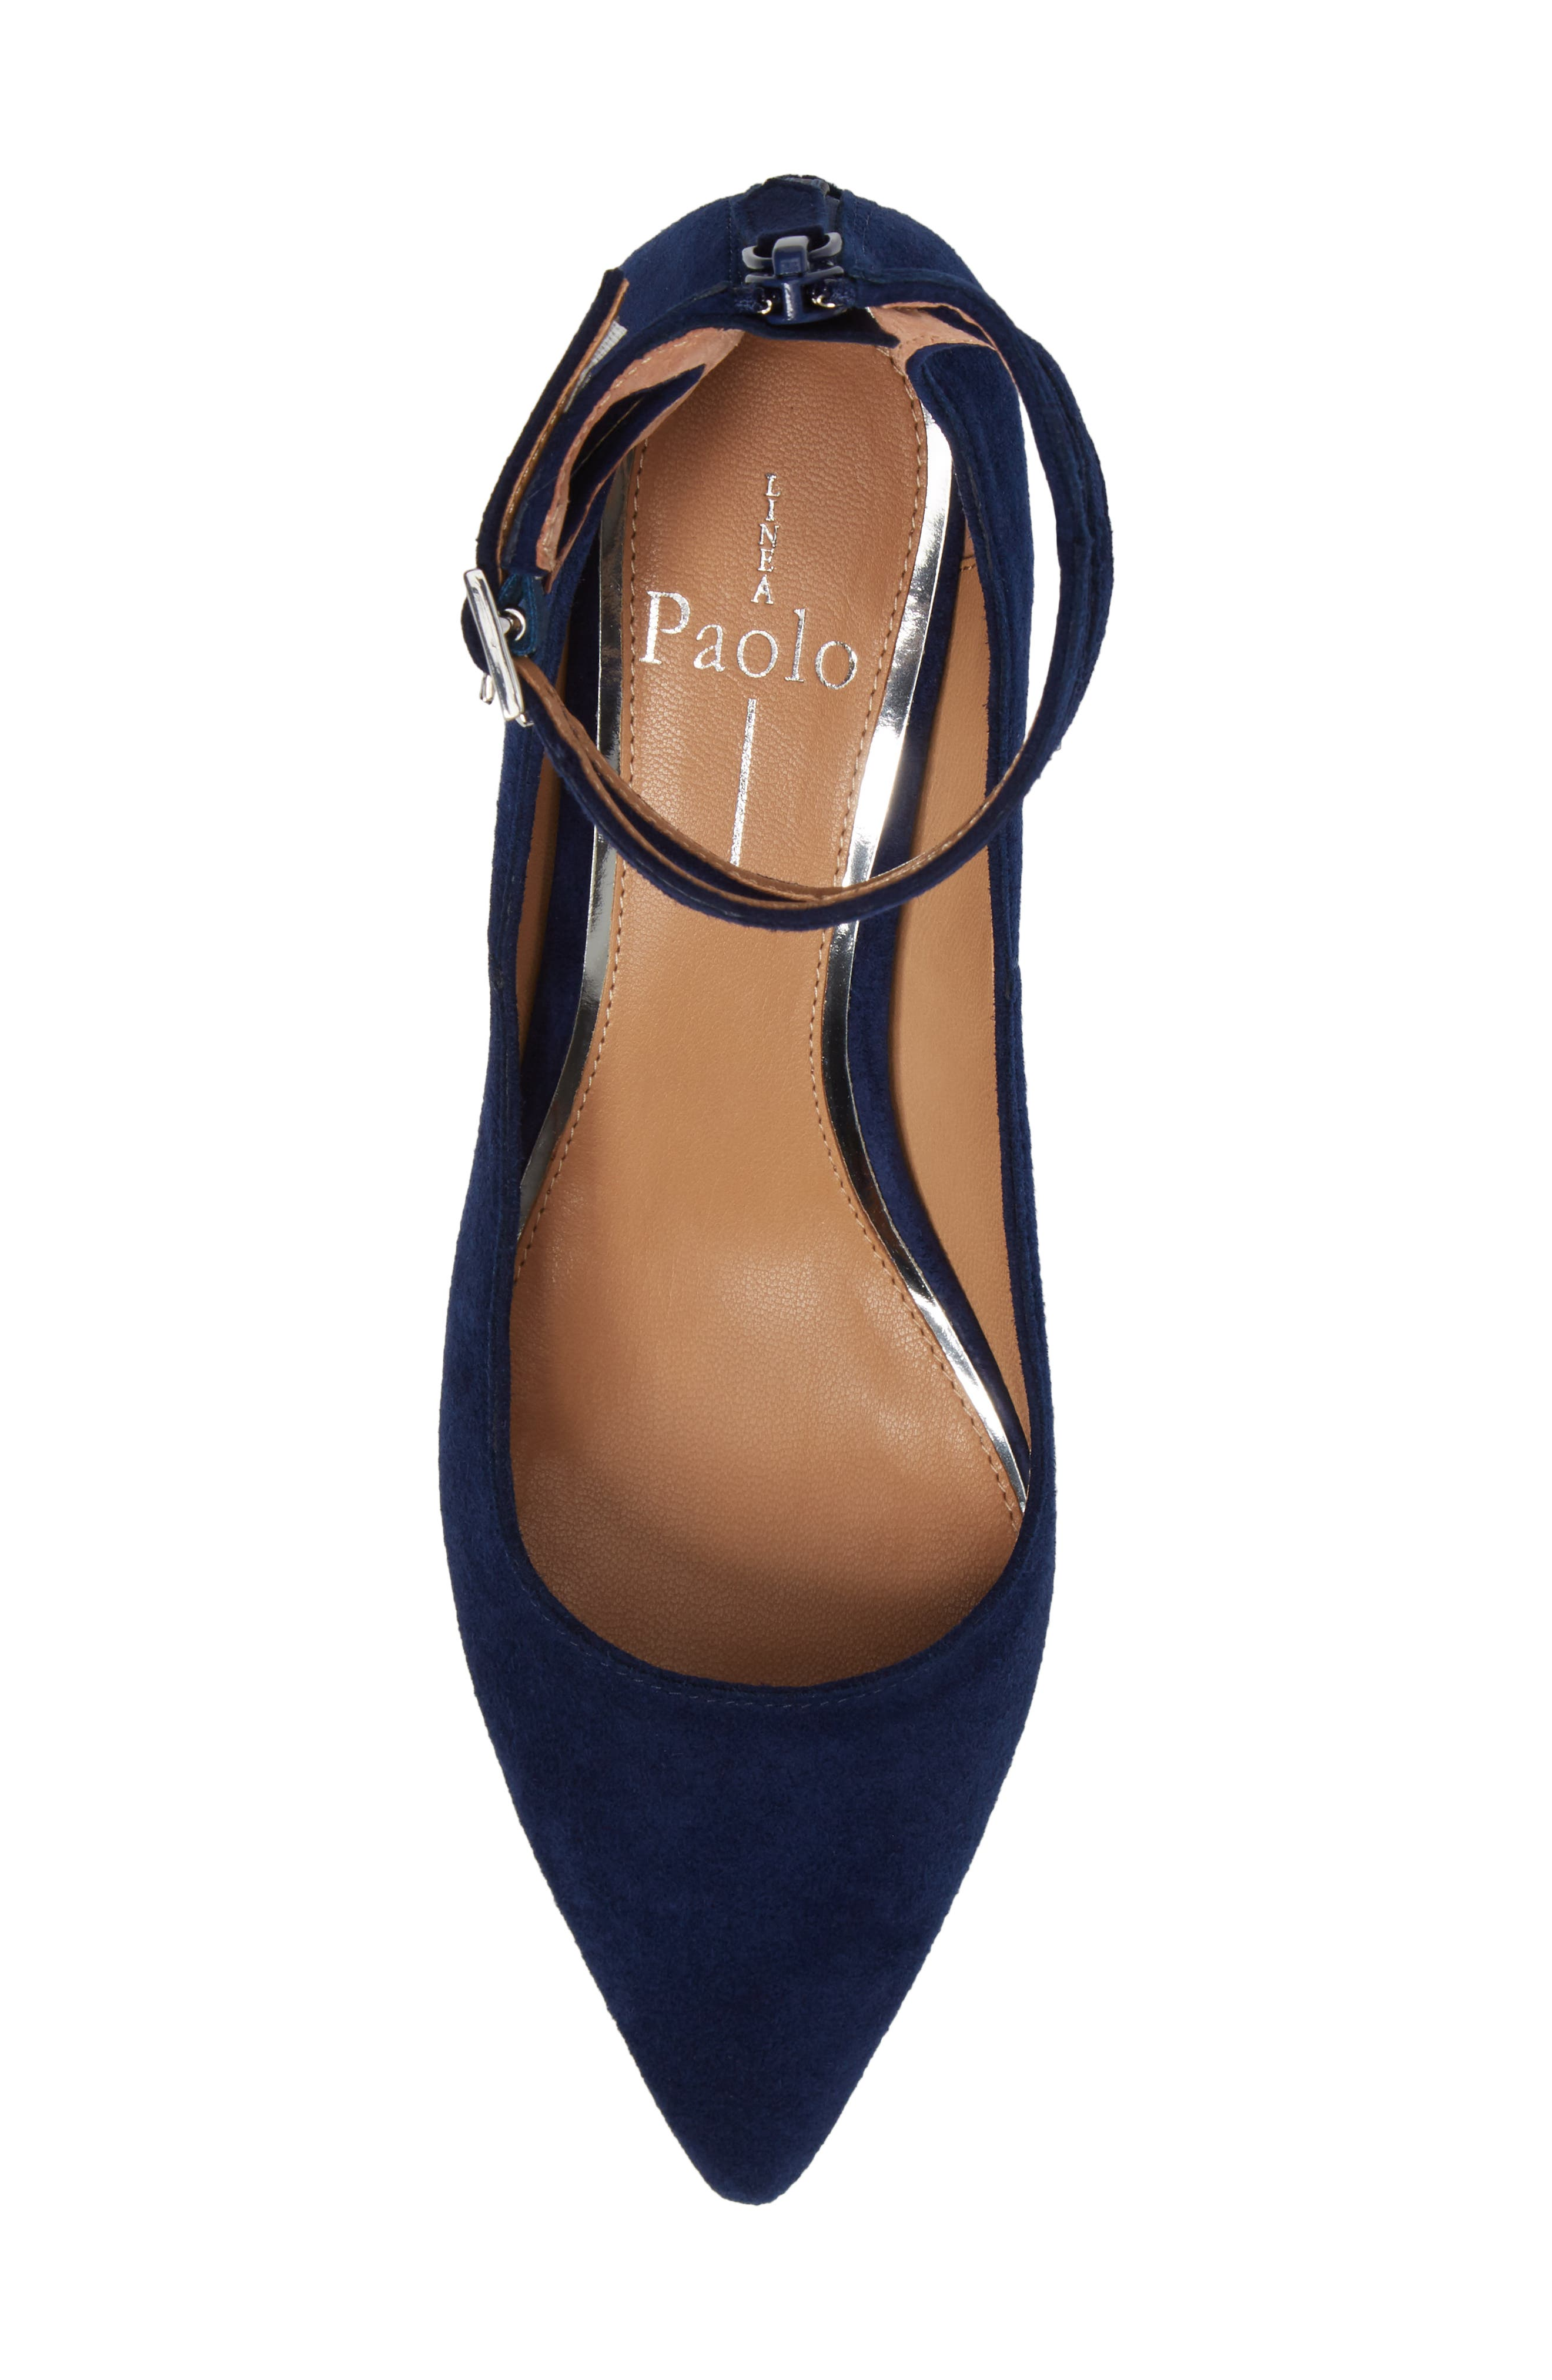 'Noel' Pointy Toe Ankle Strap Pump,                             Alternate thumbnail 5, color,                             412